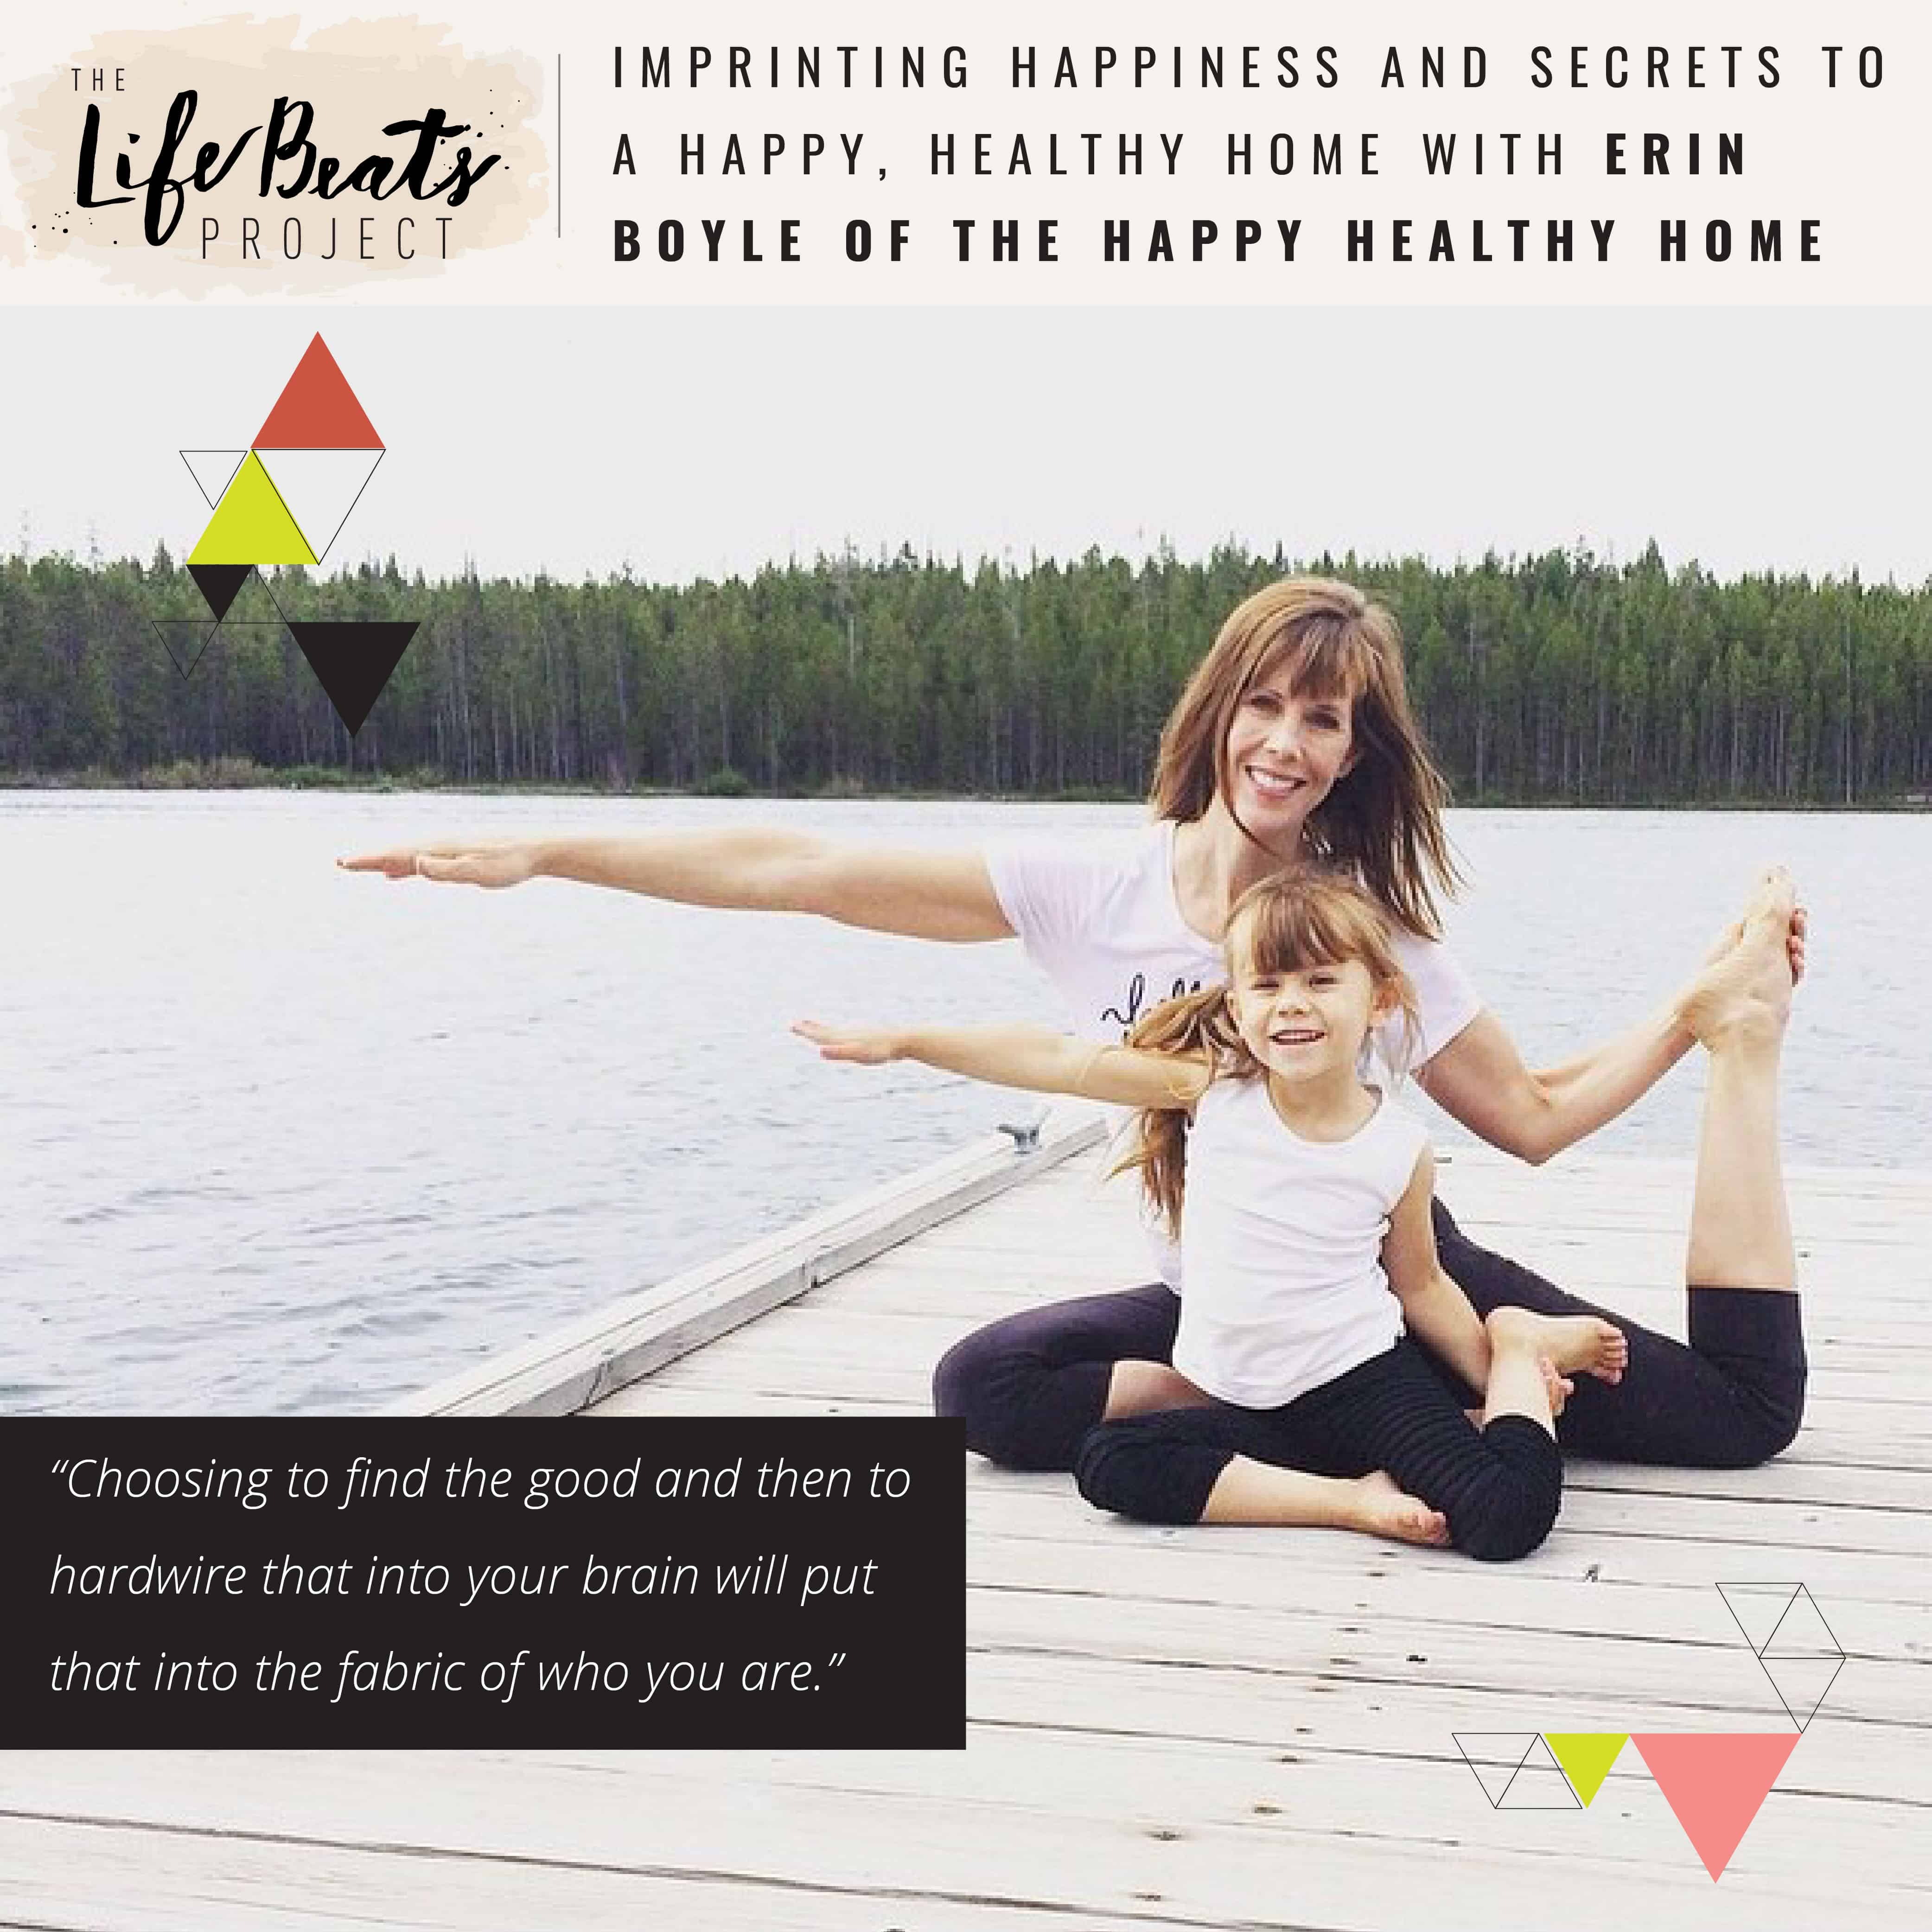 happiness secrets to a happy healthy home podcast